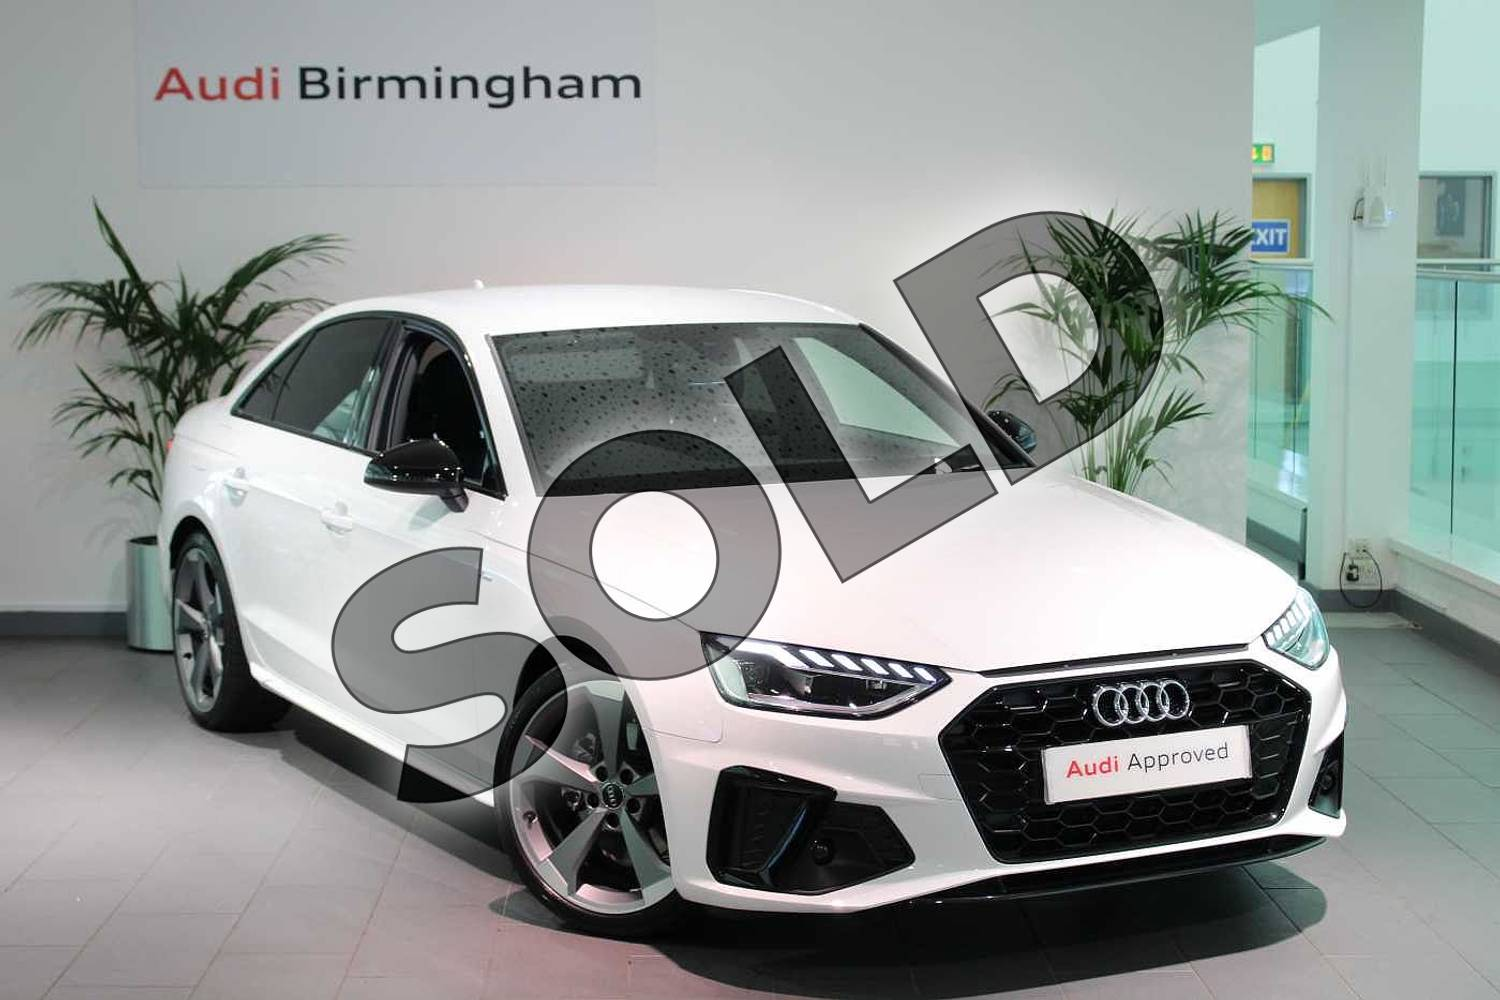 2020 Audi A4 Diesel Saloon 35 TDI Black Edition 4dr S Tronic in Ibis White at Birmingham Audi